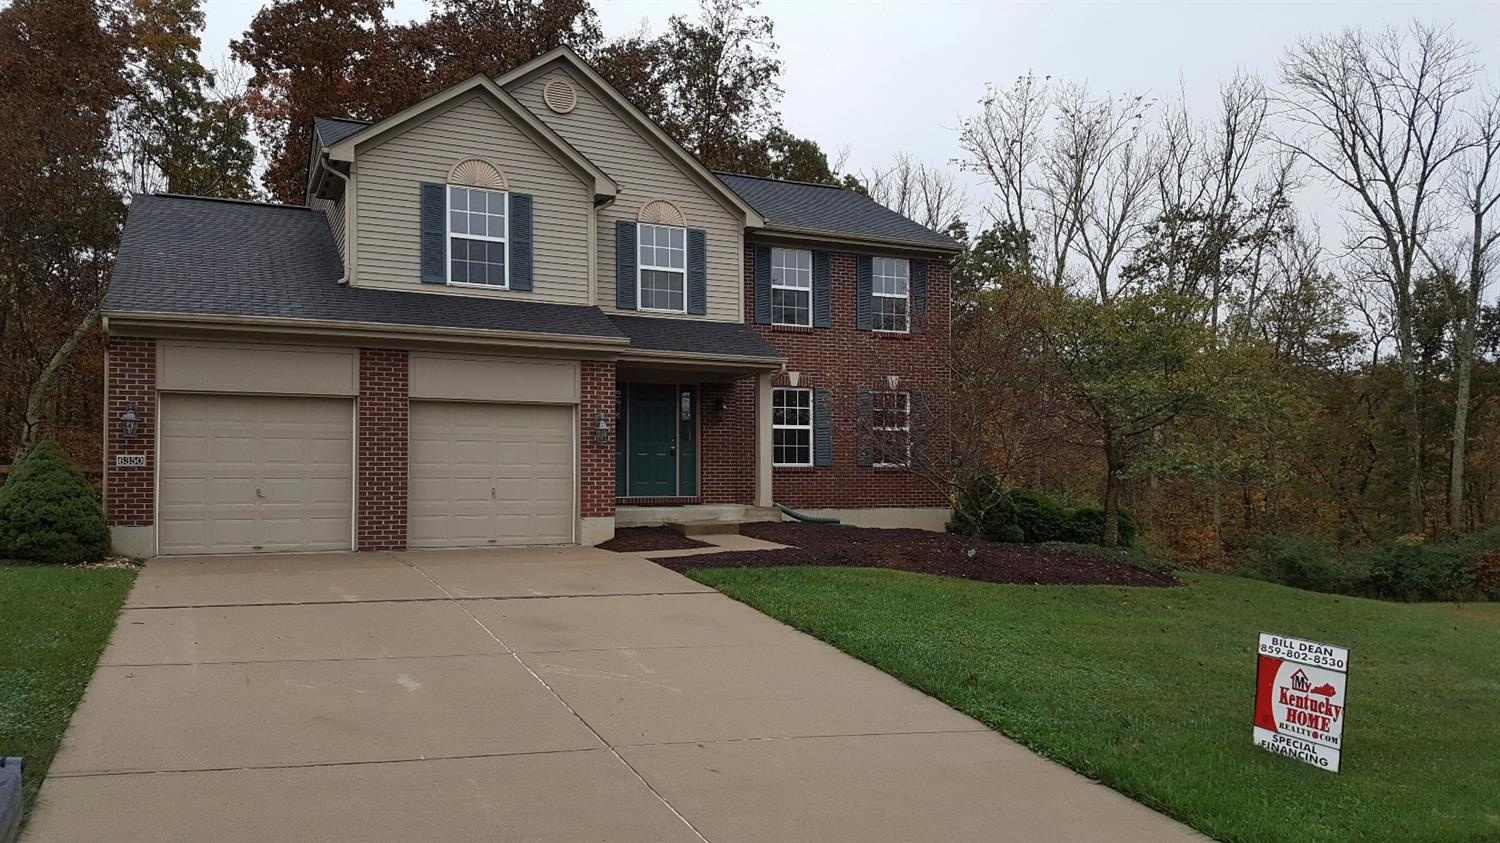 Photo 1 for 6350 Mountain Brook Ln Burlington, KY 41005